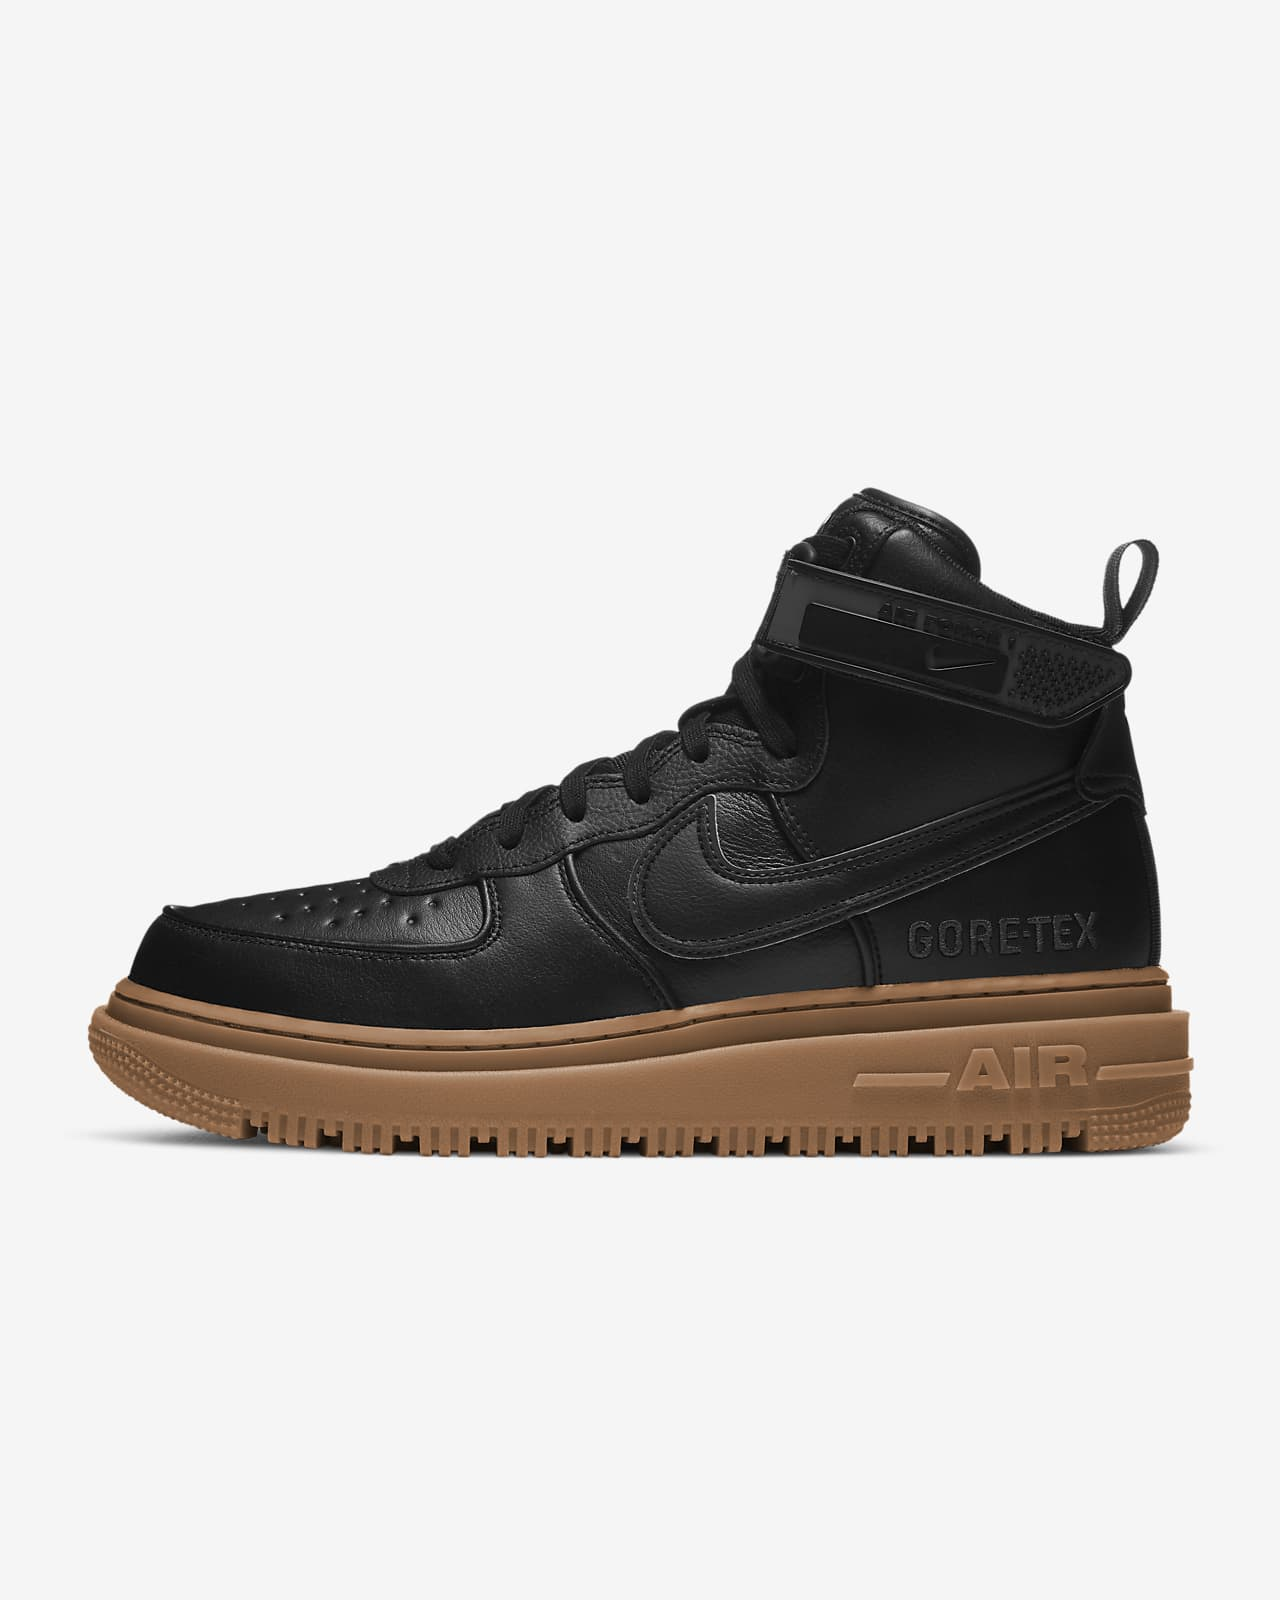 Nike Air Force 1 GTX Boot Botes